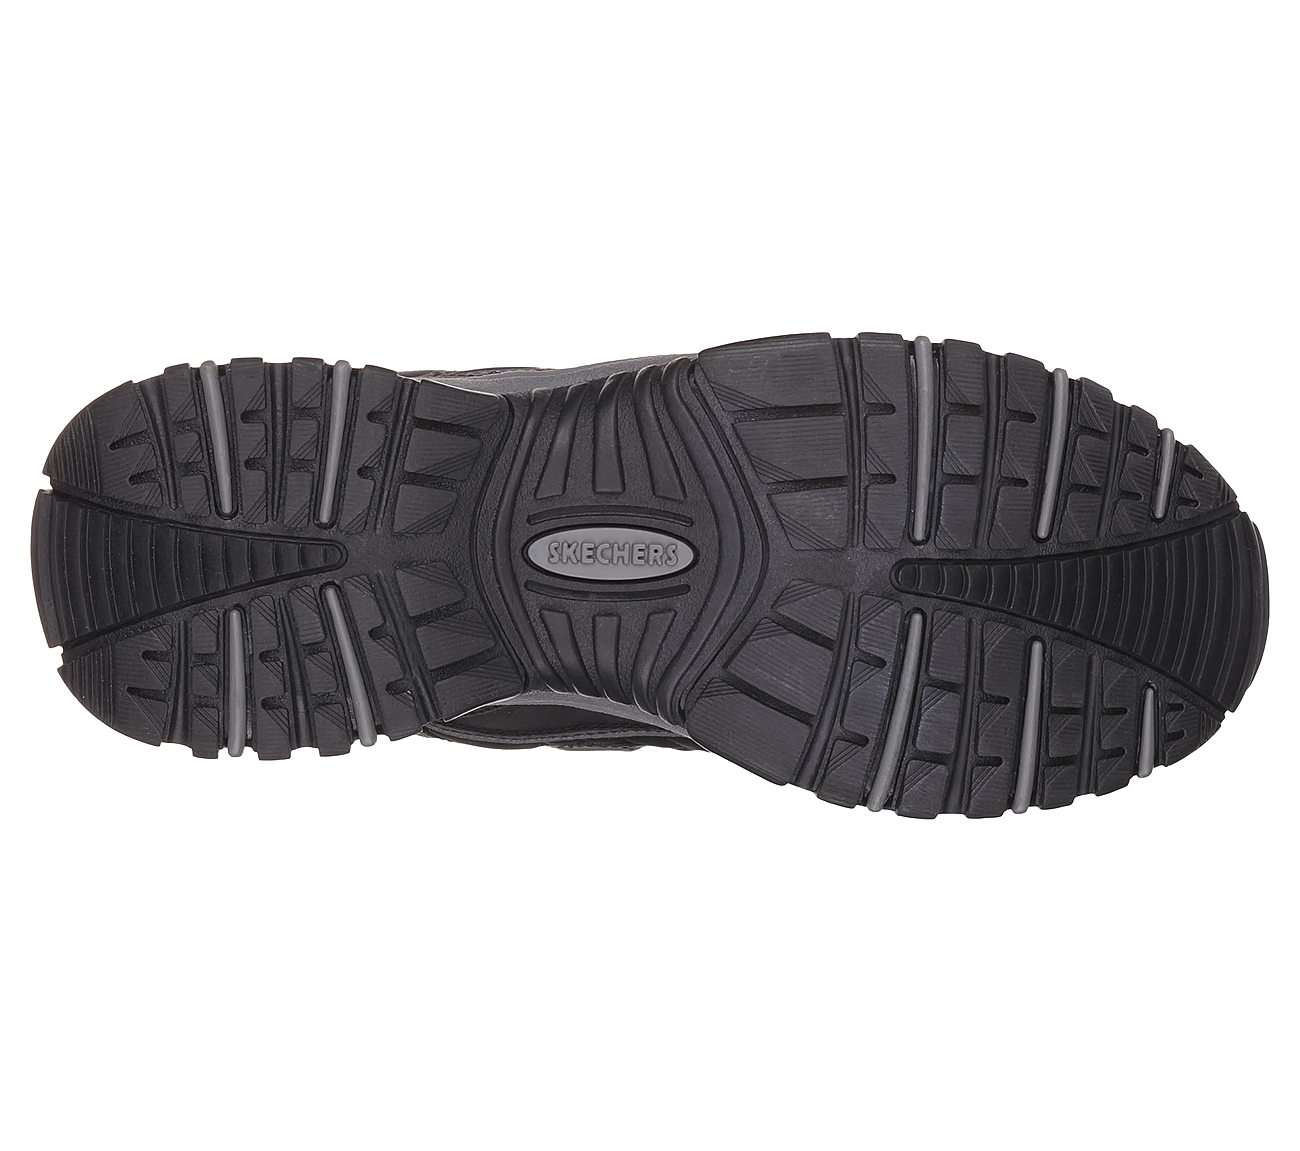 1dff57c5993 Buy SKECHERS Energy - Downforce Heritage Shoes only $65.00